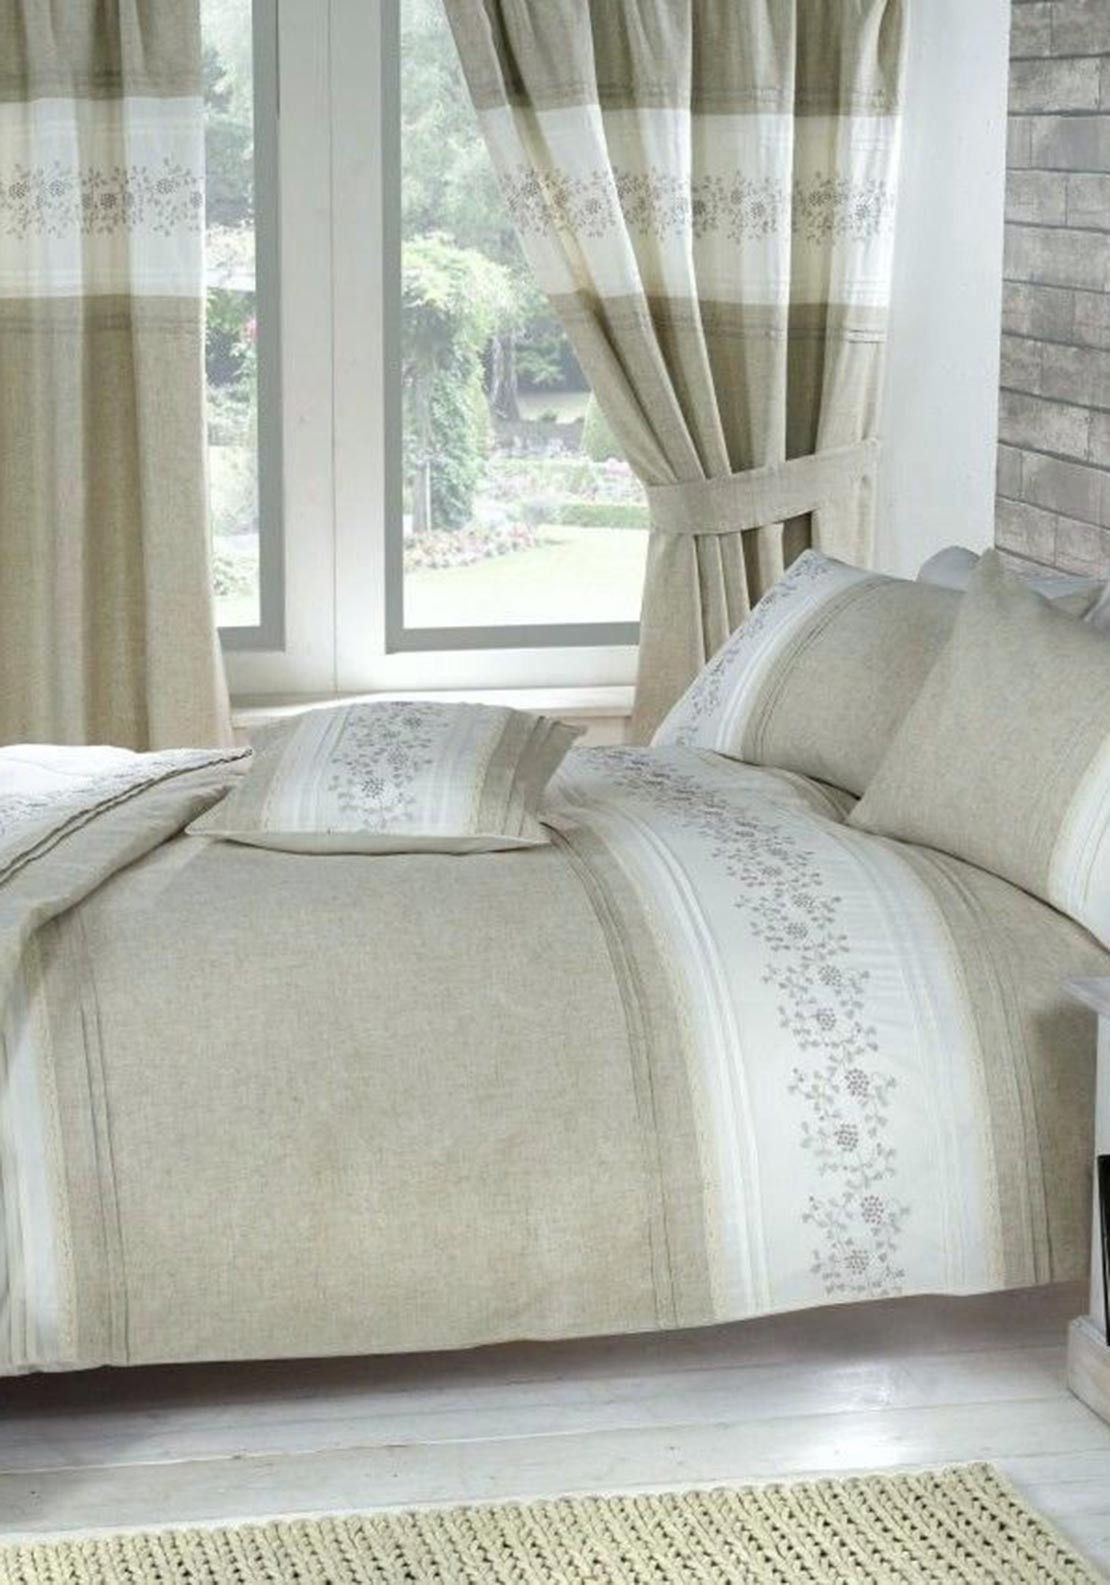 r v beige catalog pillowcase rt queen duvet products s full us en double and cover ikea